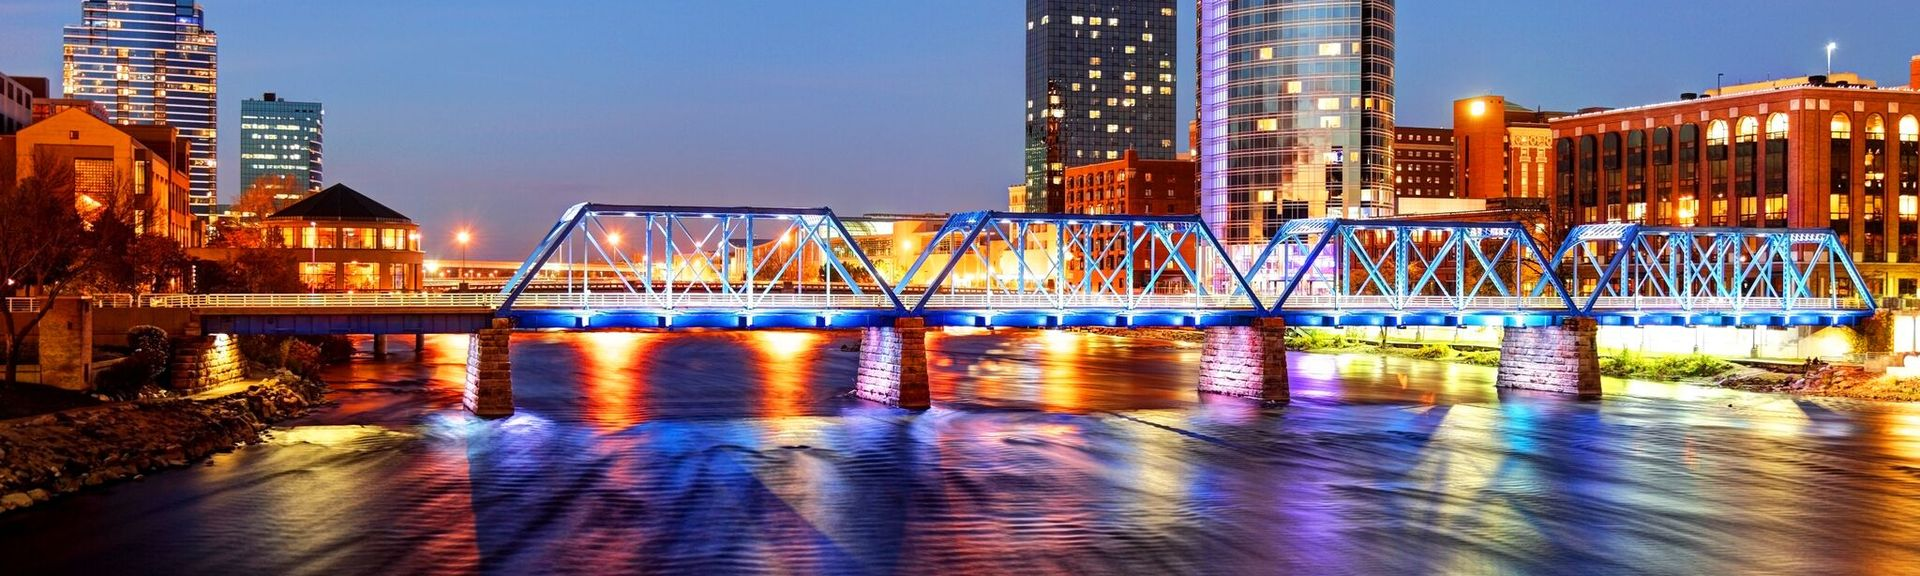 Grand Rapids, Michigan, Verenigde Staten